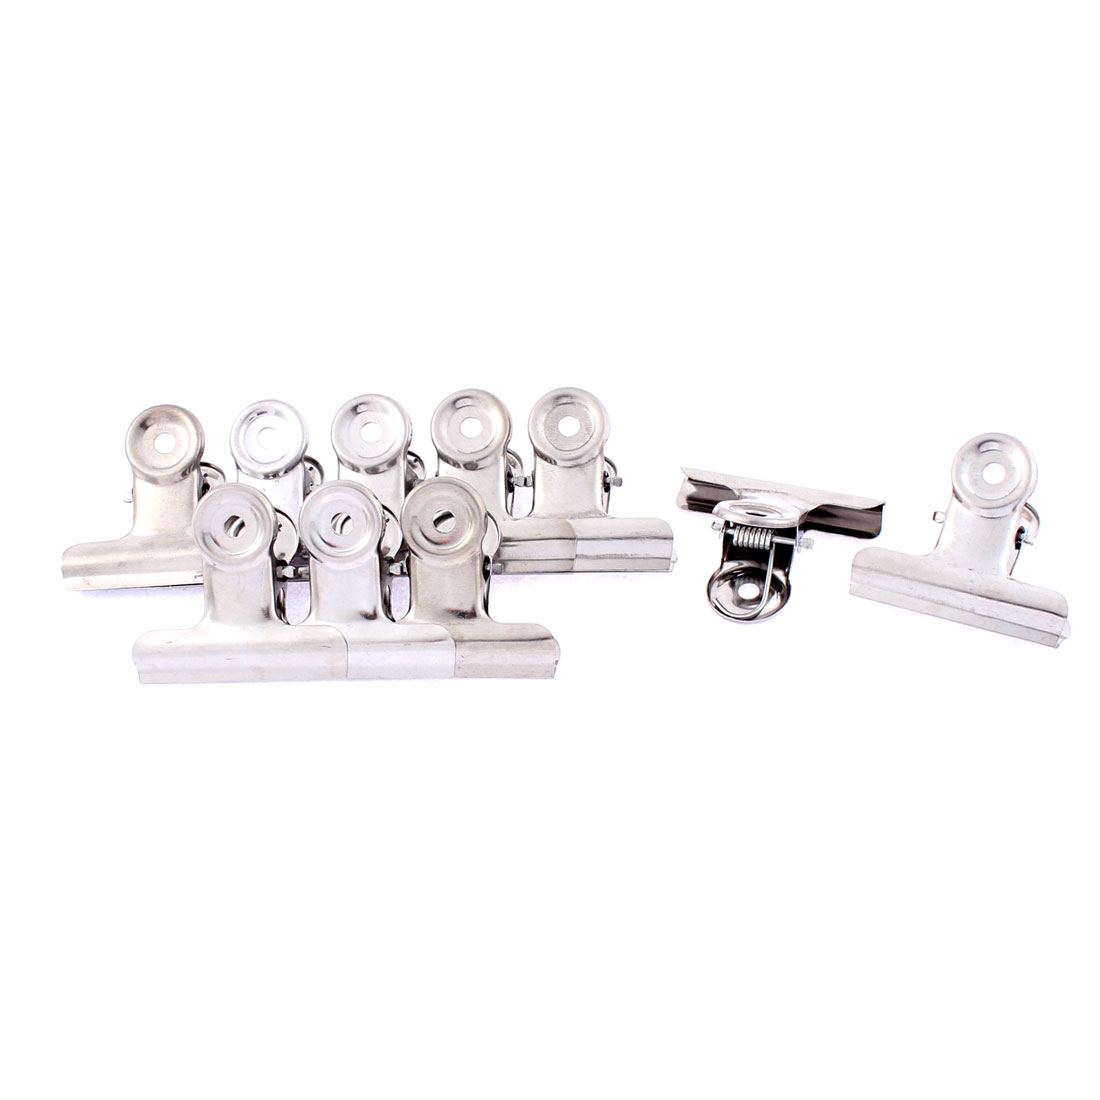 Stainless Steel Spring Loaded Clothes Pin Clips Hanger 2 Inch Width 10 Pcs